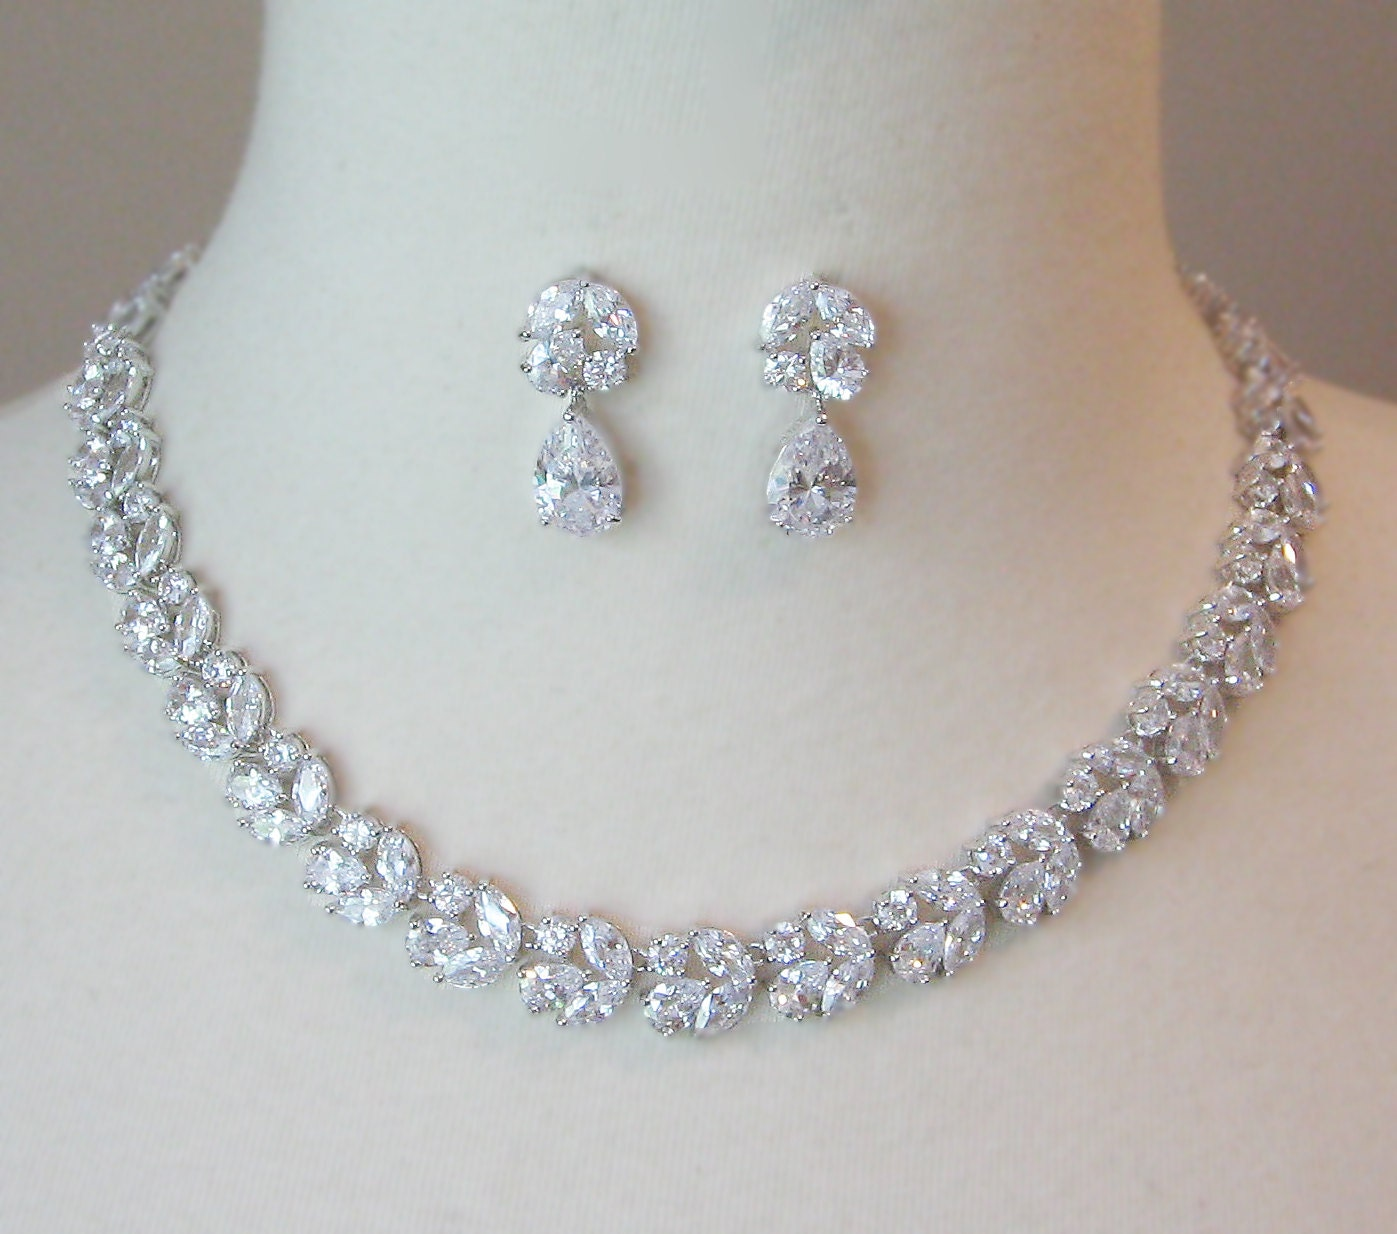 Cubic Zirconia Jewelry Sets : Cubic zirconia necklace and earrings bridal set vintage style